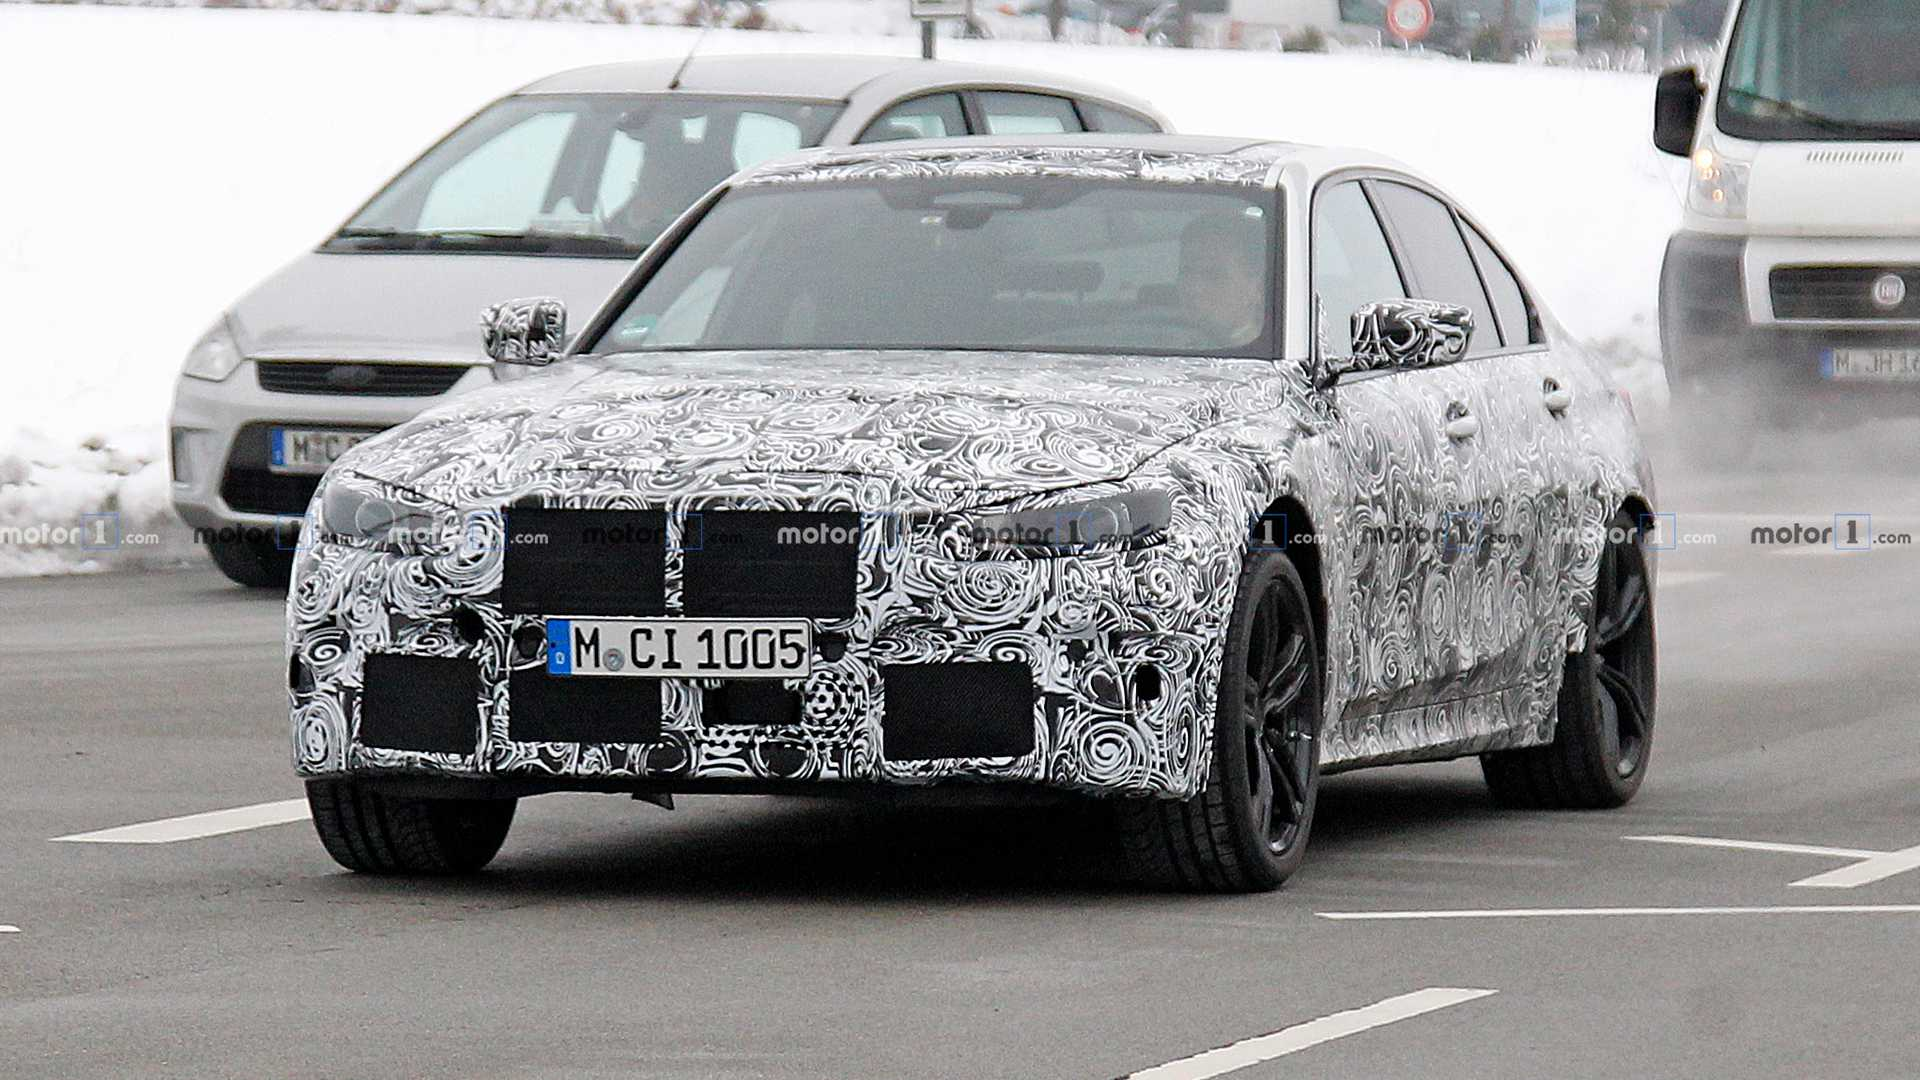 2020-bmw-m3-spy-photo (3).jpg